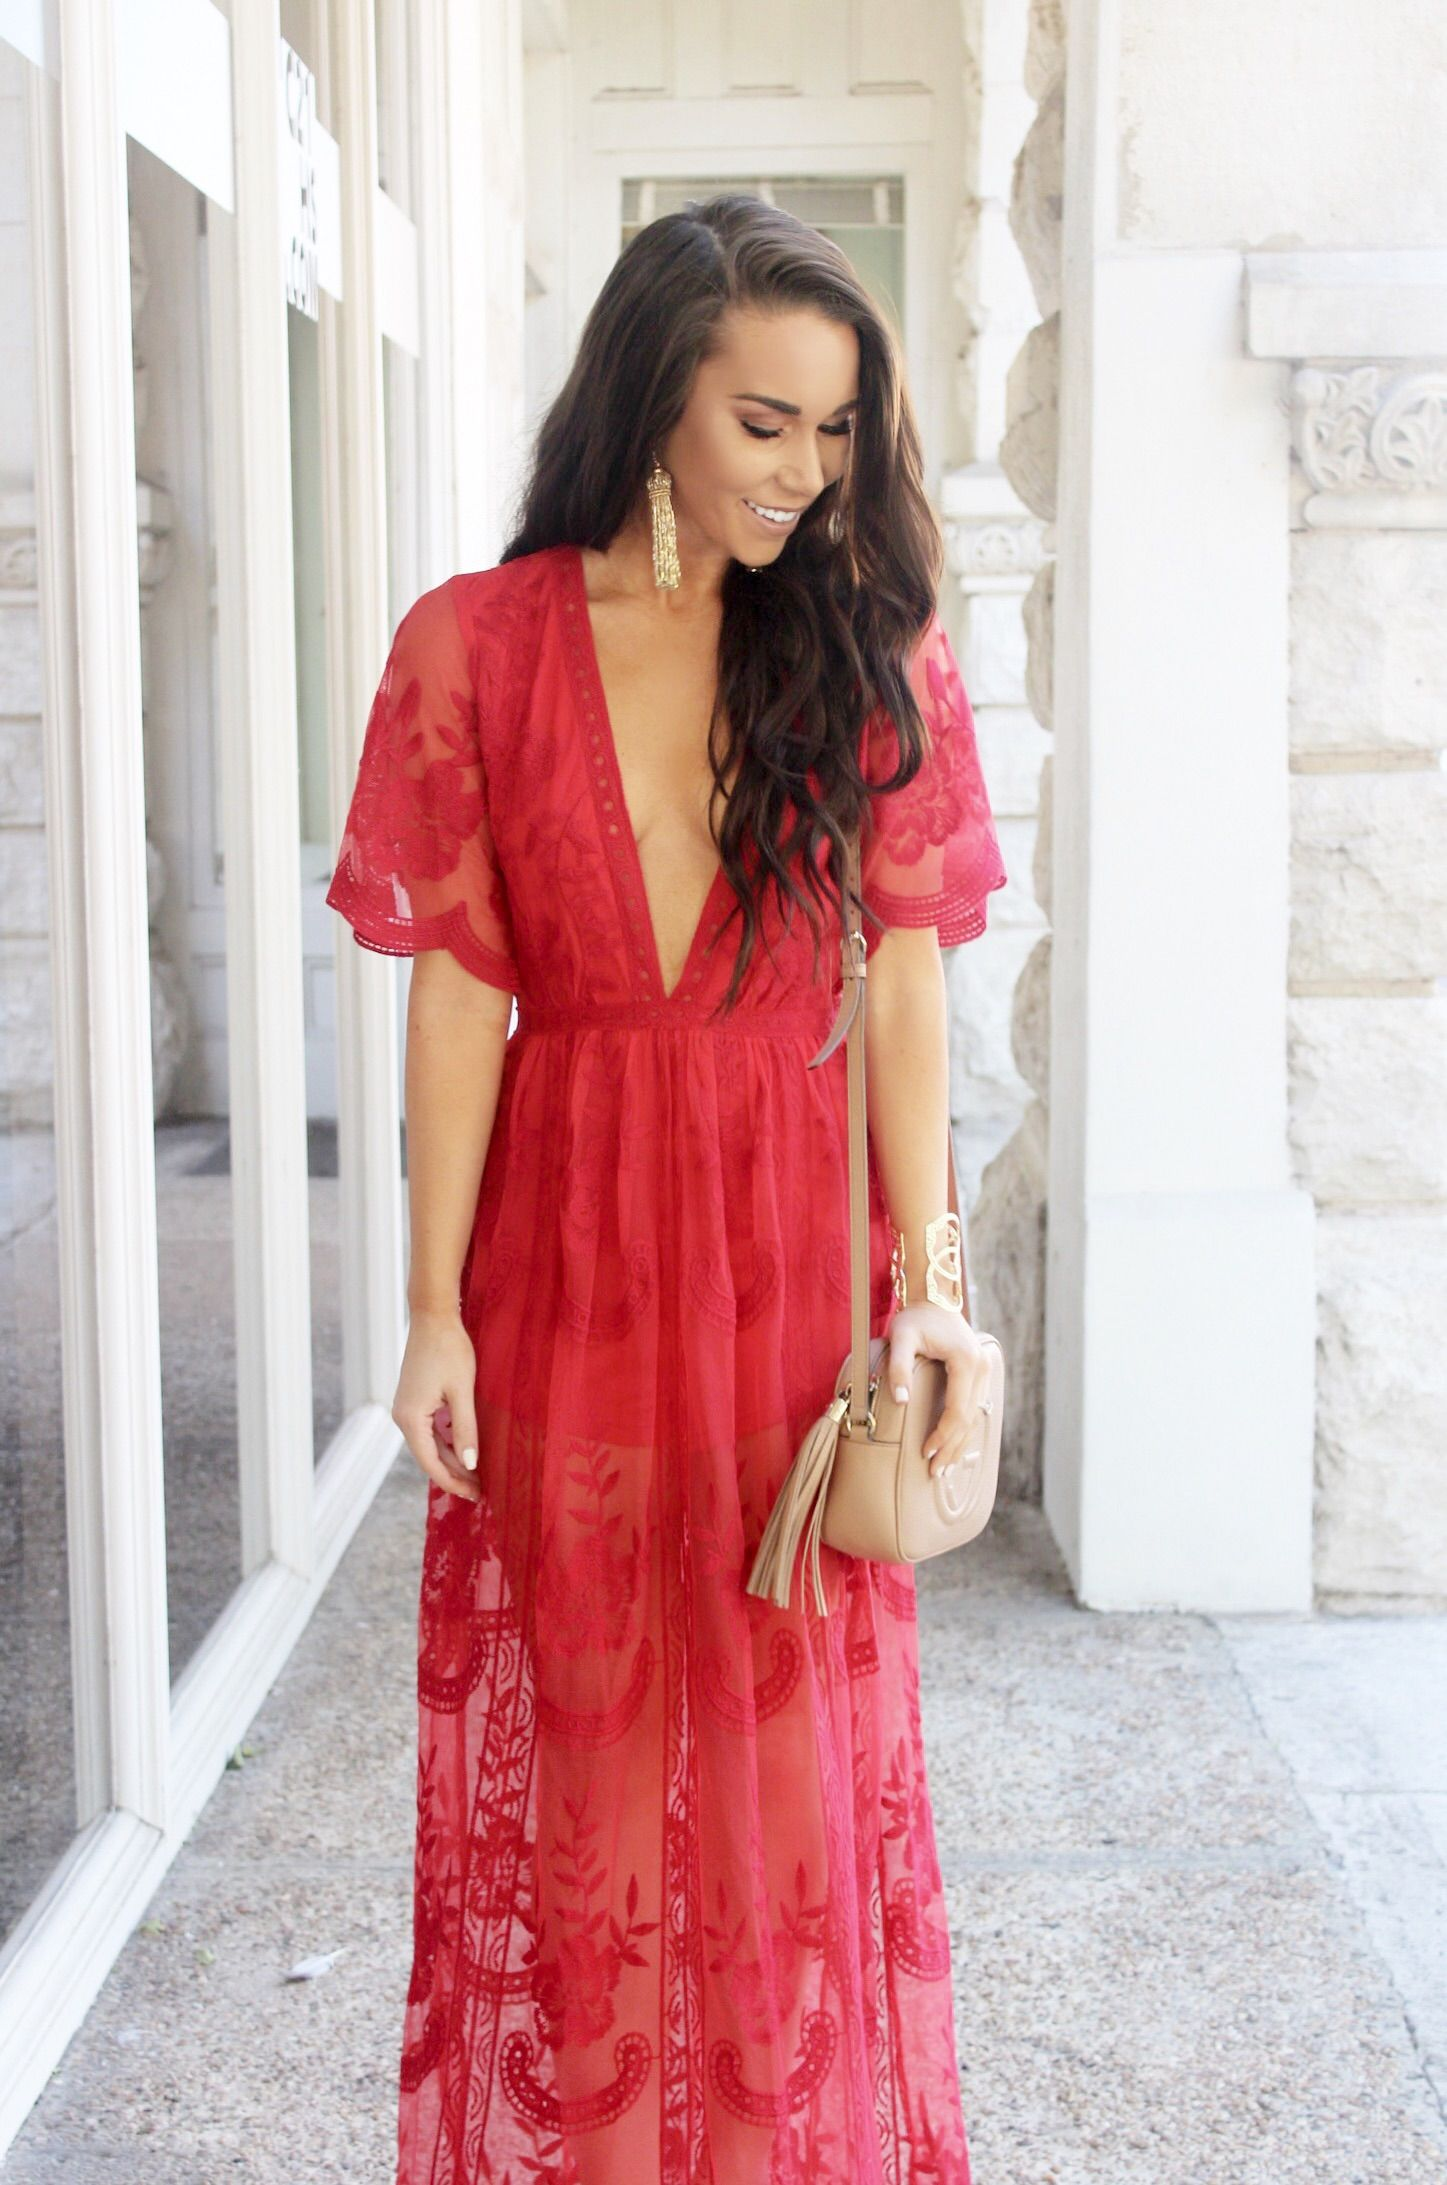 Red Lace Romper Maxi  60 - Sunshine   Stilettos Blog (Instagram    katlynmaupin) 1b668fca9f